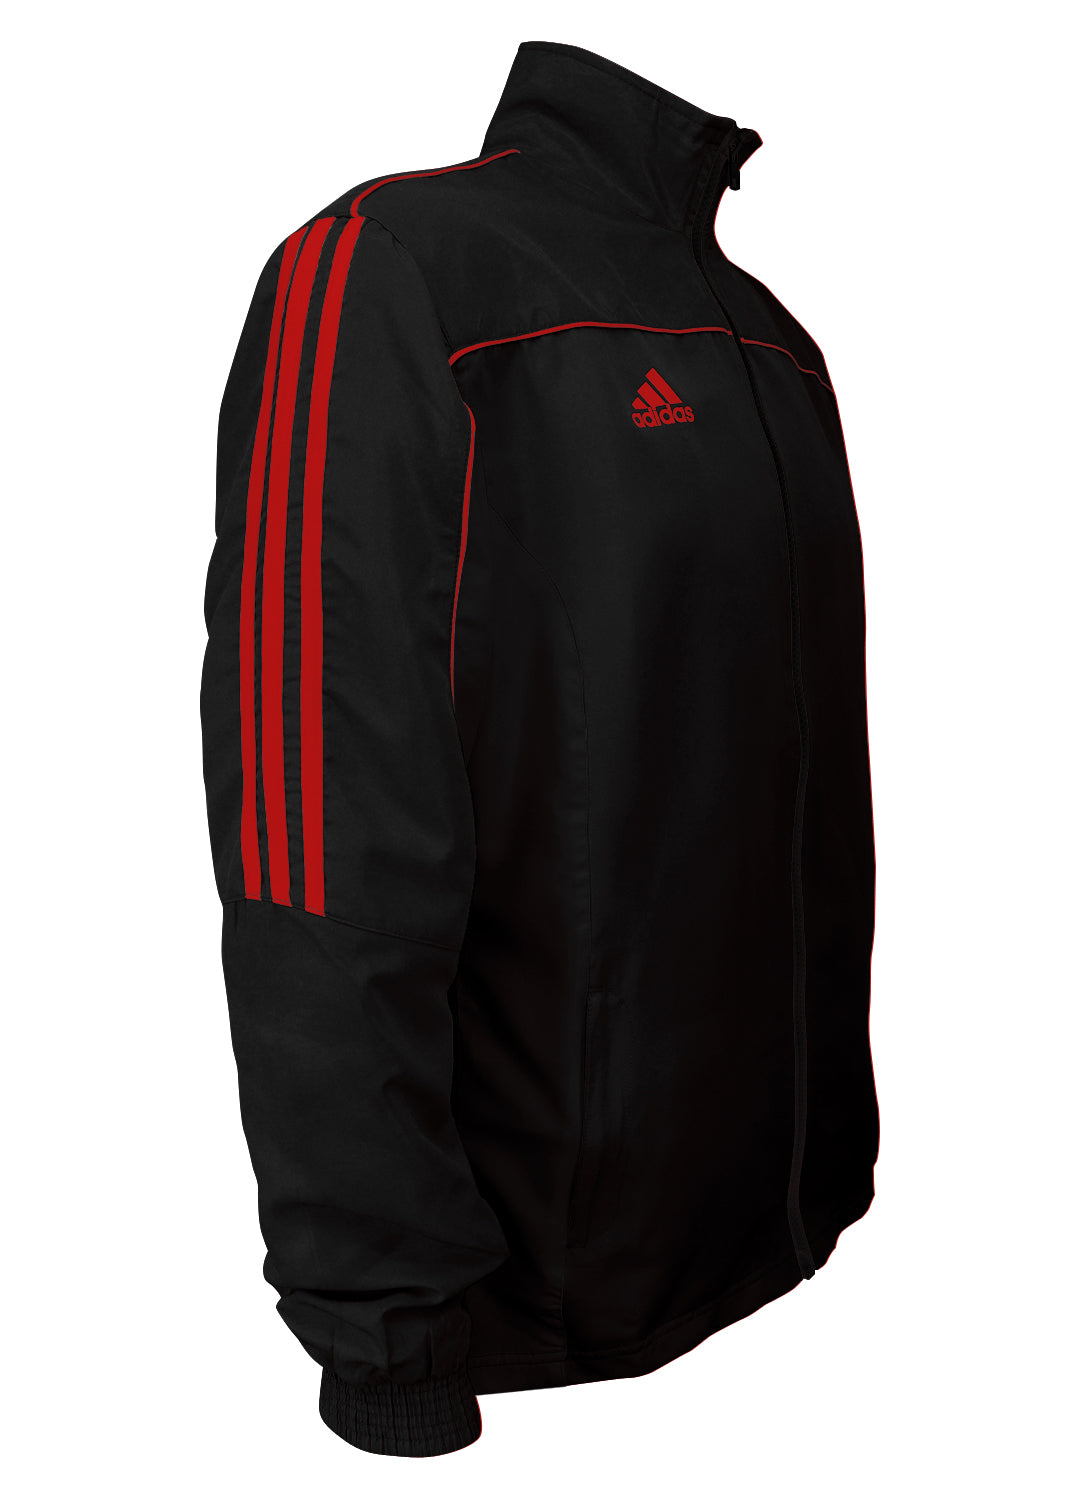 adidas Black with Red Stripes Windbreaker Style Team Jacket Side View